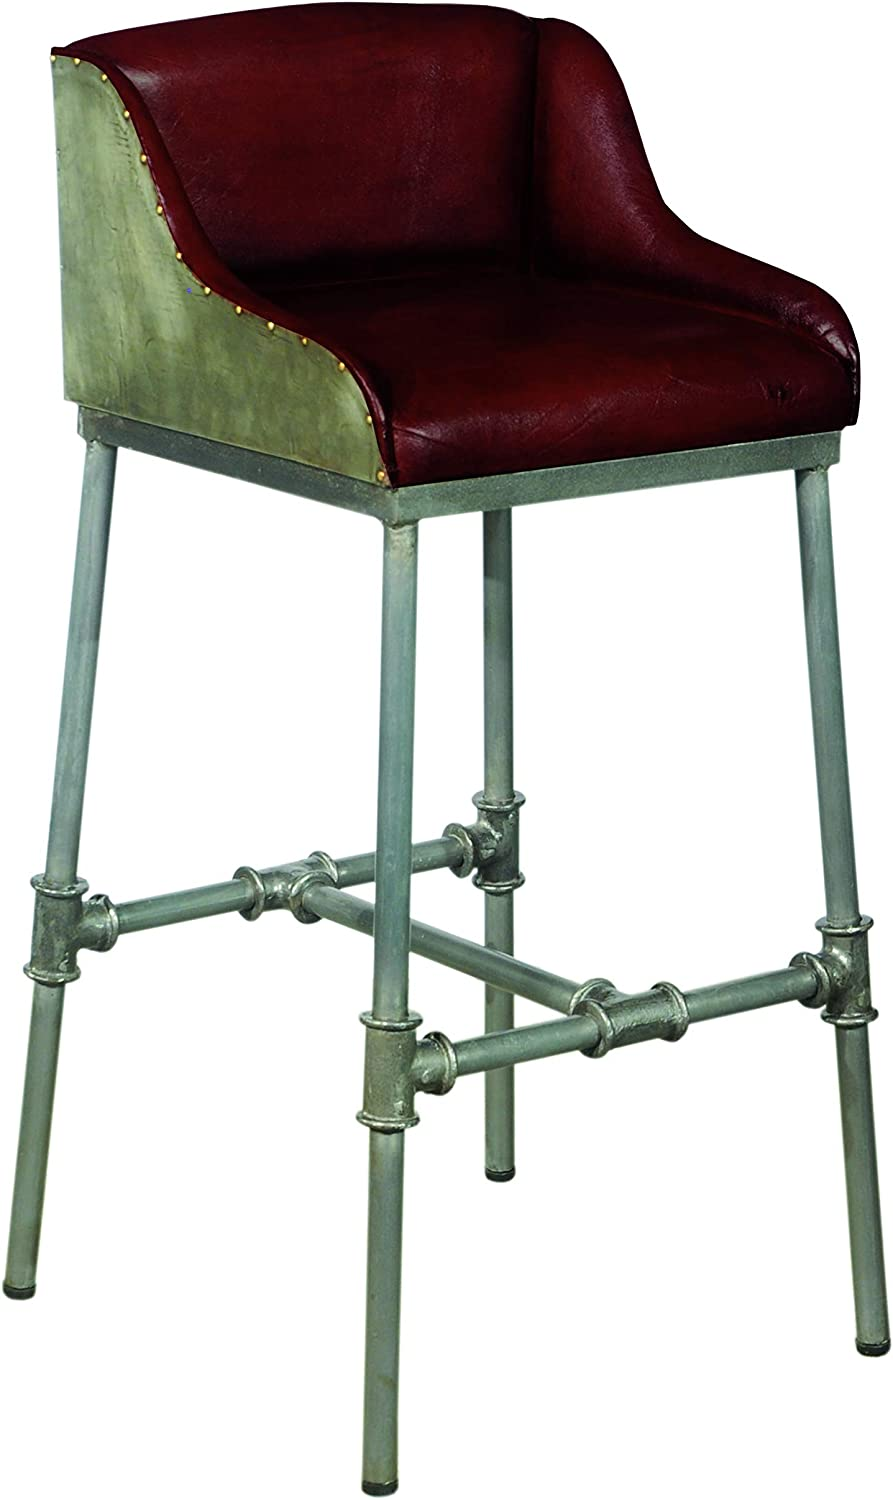 Pulaski Industrial Leather and Metal Barstool